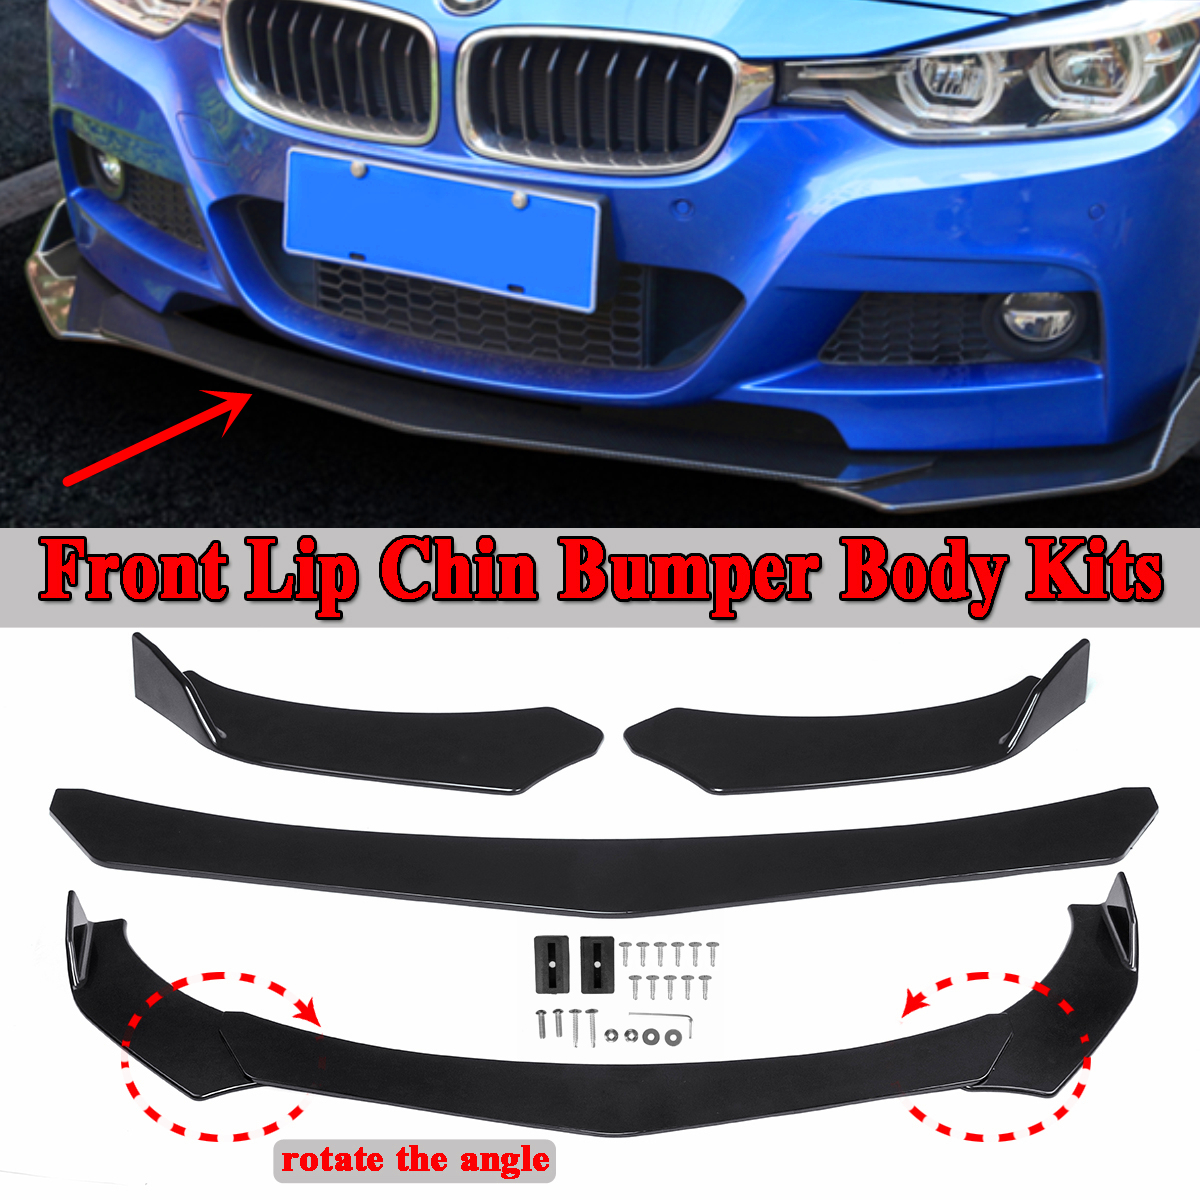 New 3pcs Car Universal Black Front Bumper Spoiler Lip Body Kits Rotate The Angle For BMW E36 E46 E60 E63 E64 E90 E91 E92 E93